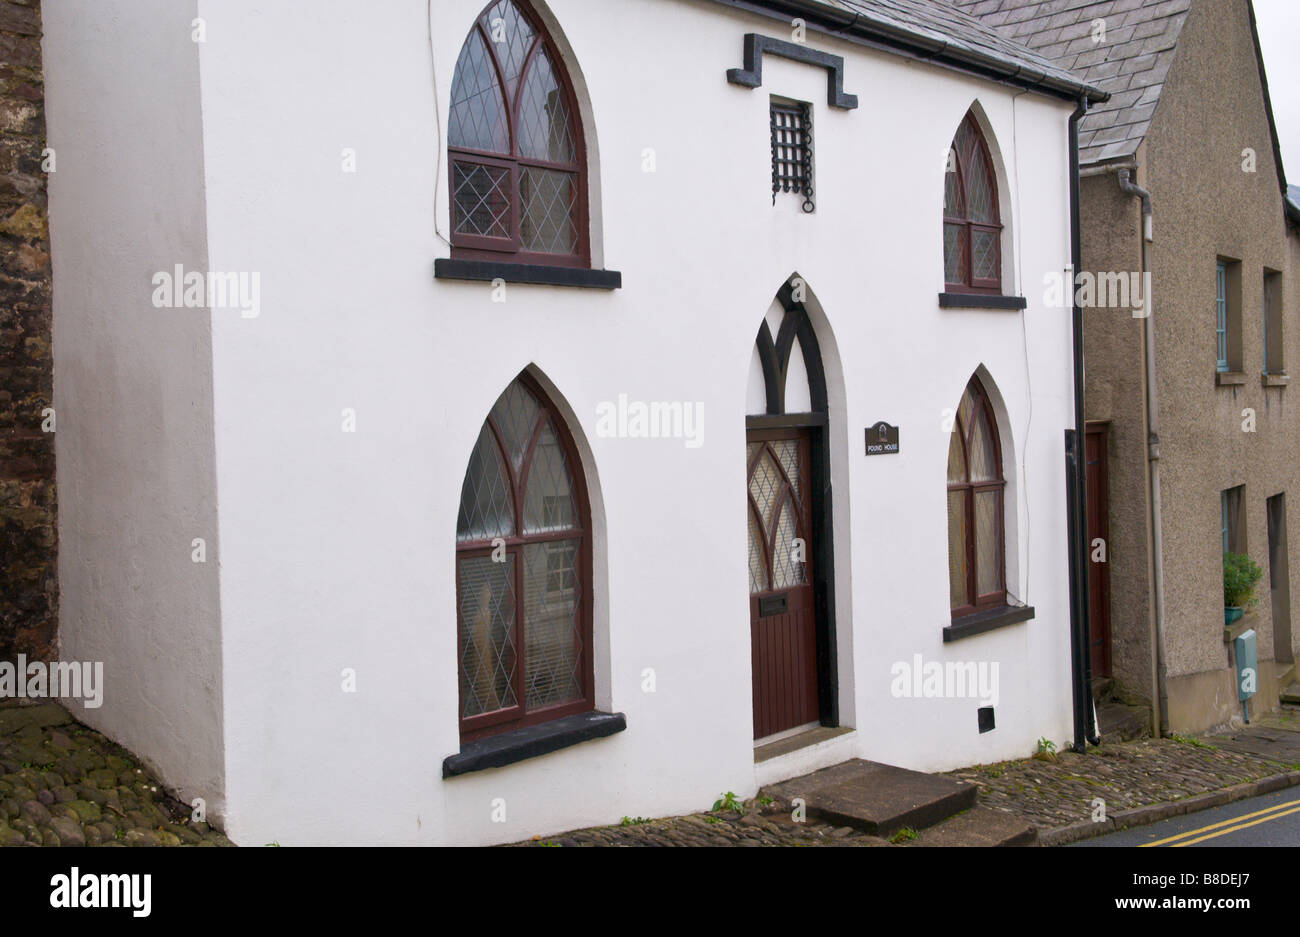 Small Detached House With Gothic Style Windows And Front Door In Crickhowell Powys Wales UK